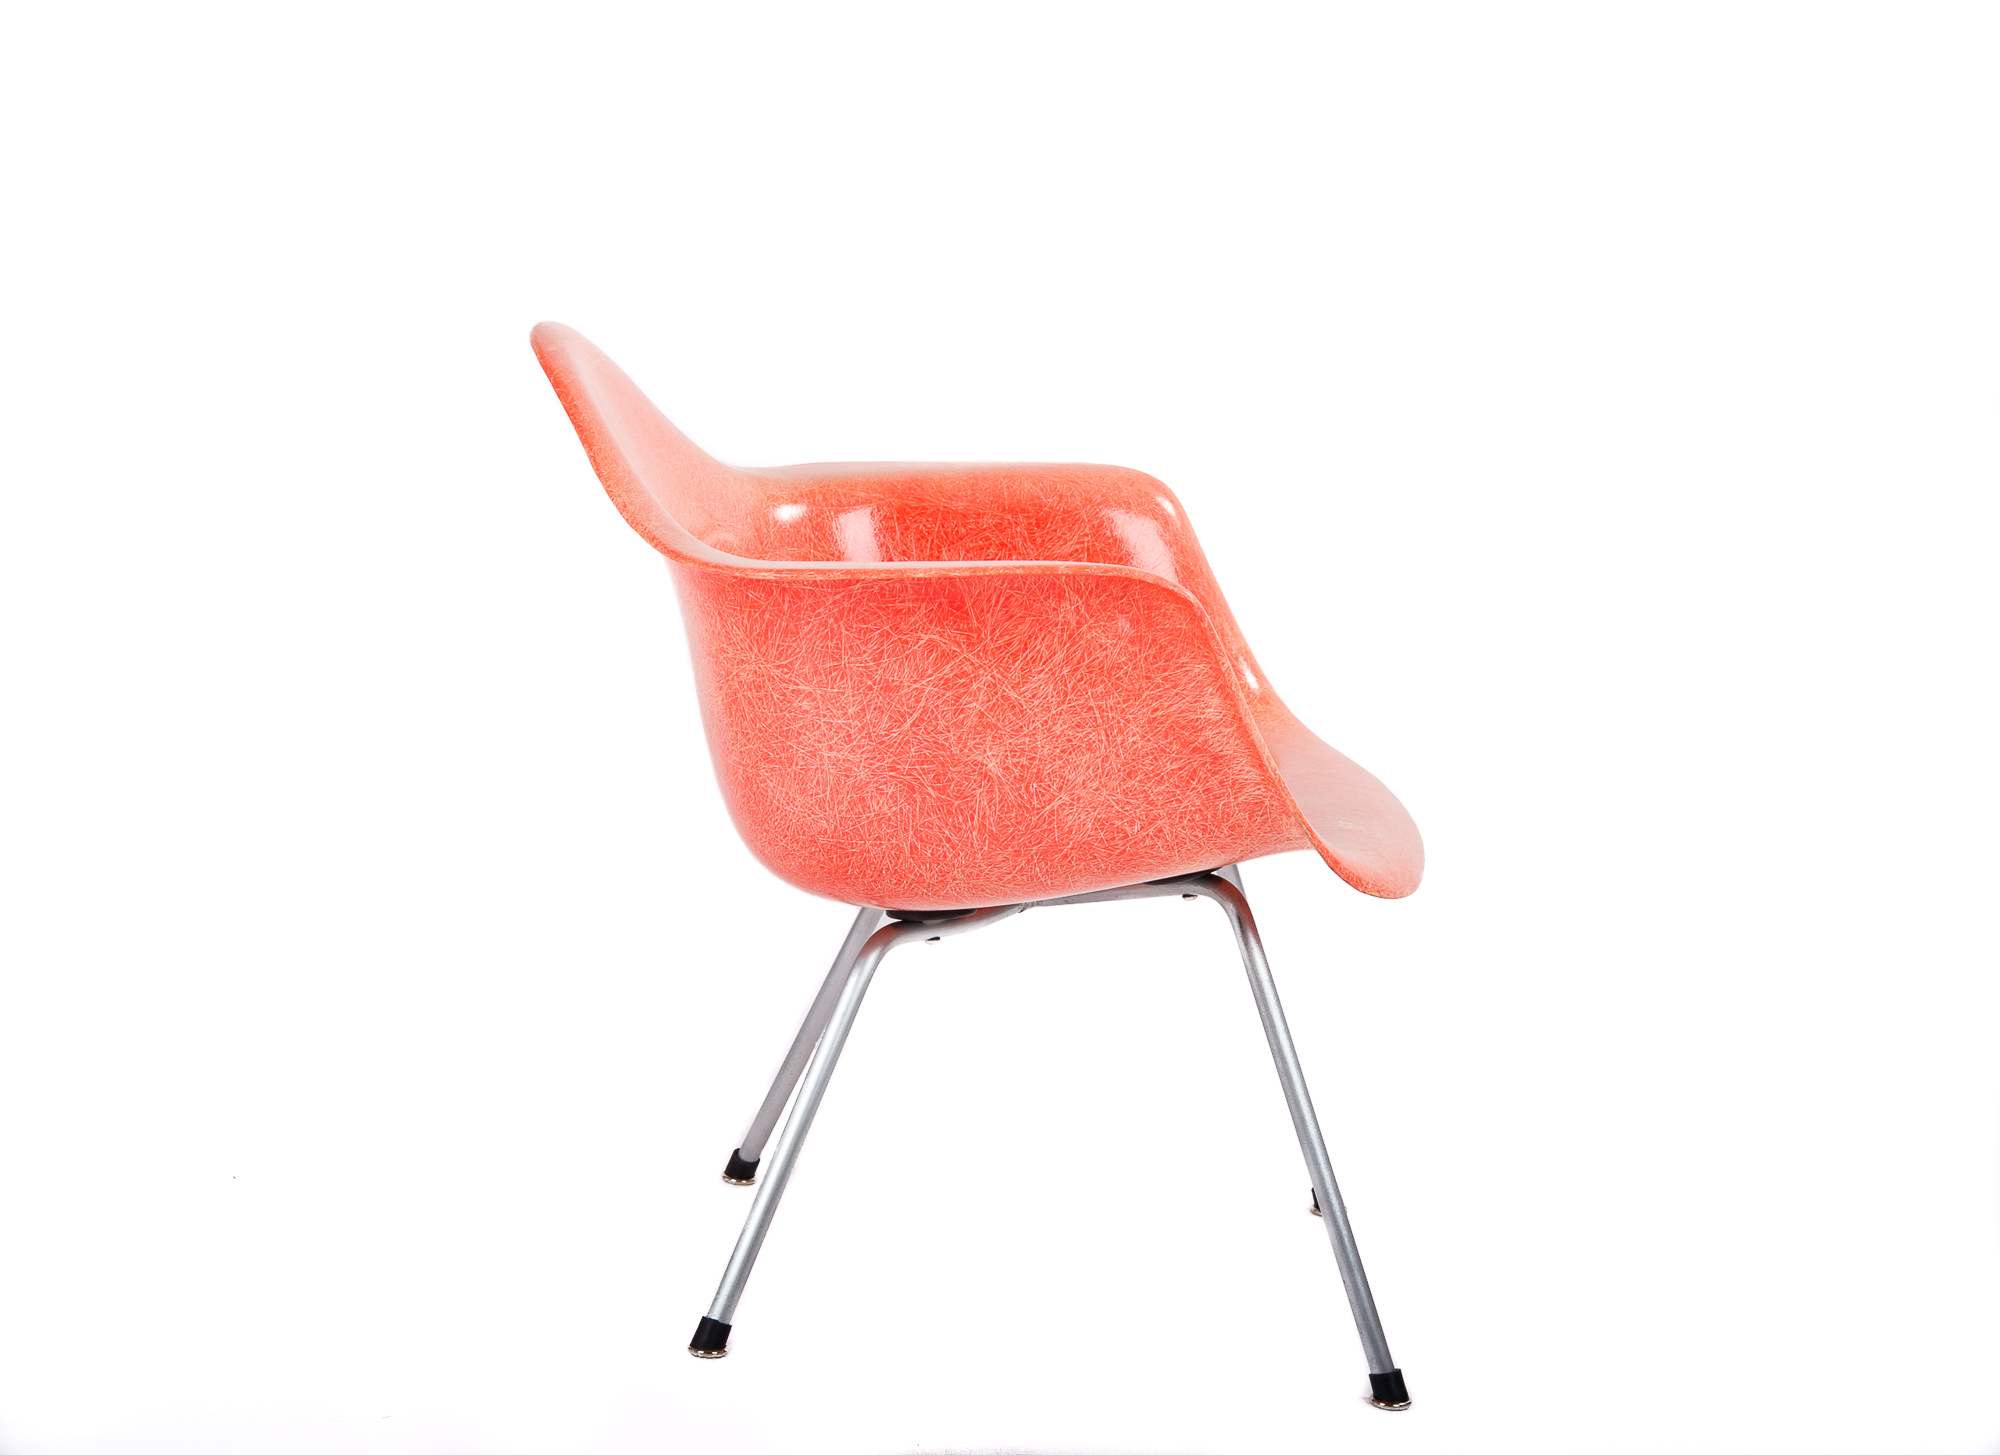 Red Orange 1953 Zenith Plastics Eames DAX (& Variants) Arm